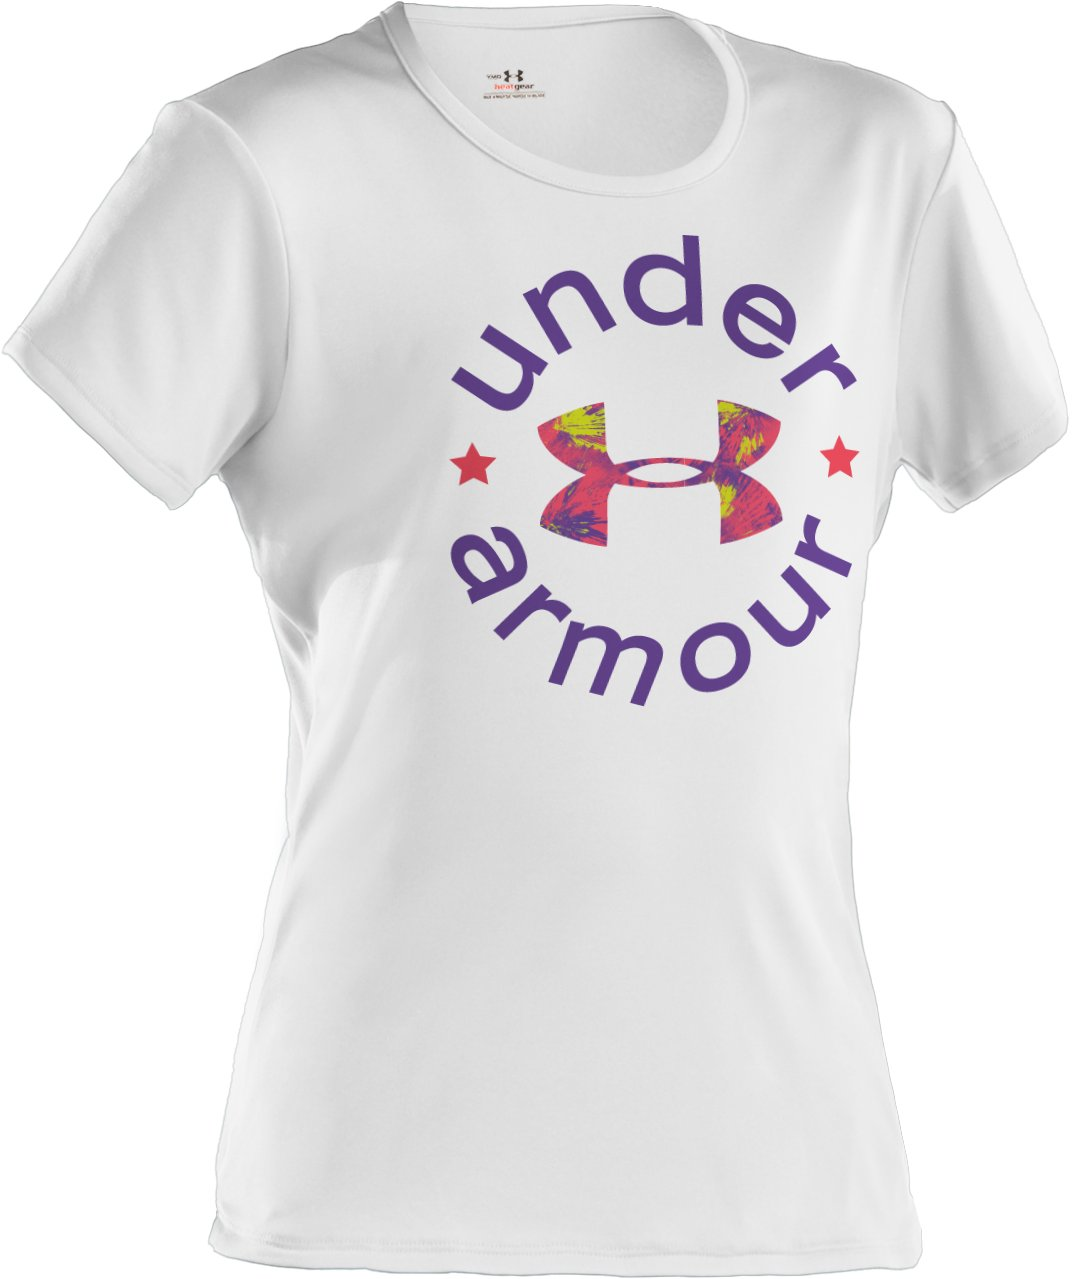 Girls' UA Wordmark Graphic T-Shirt, White